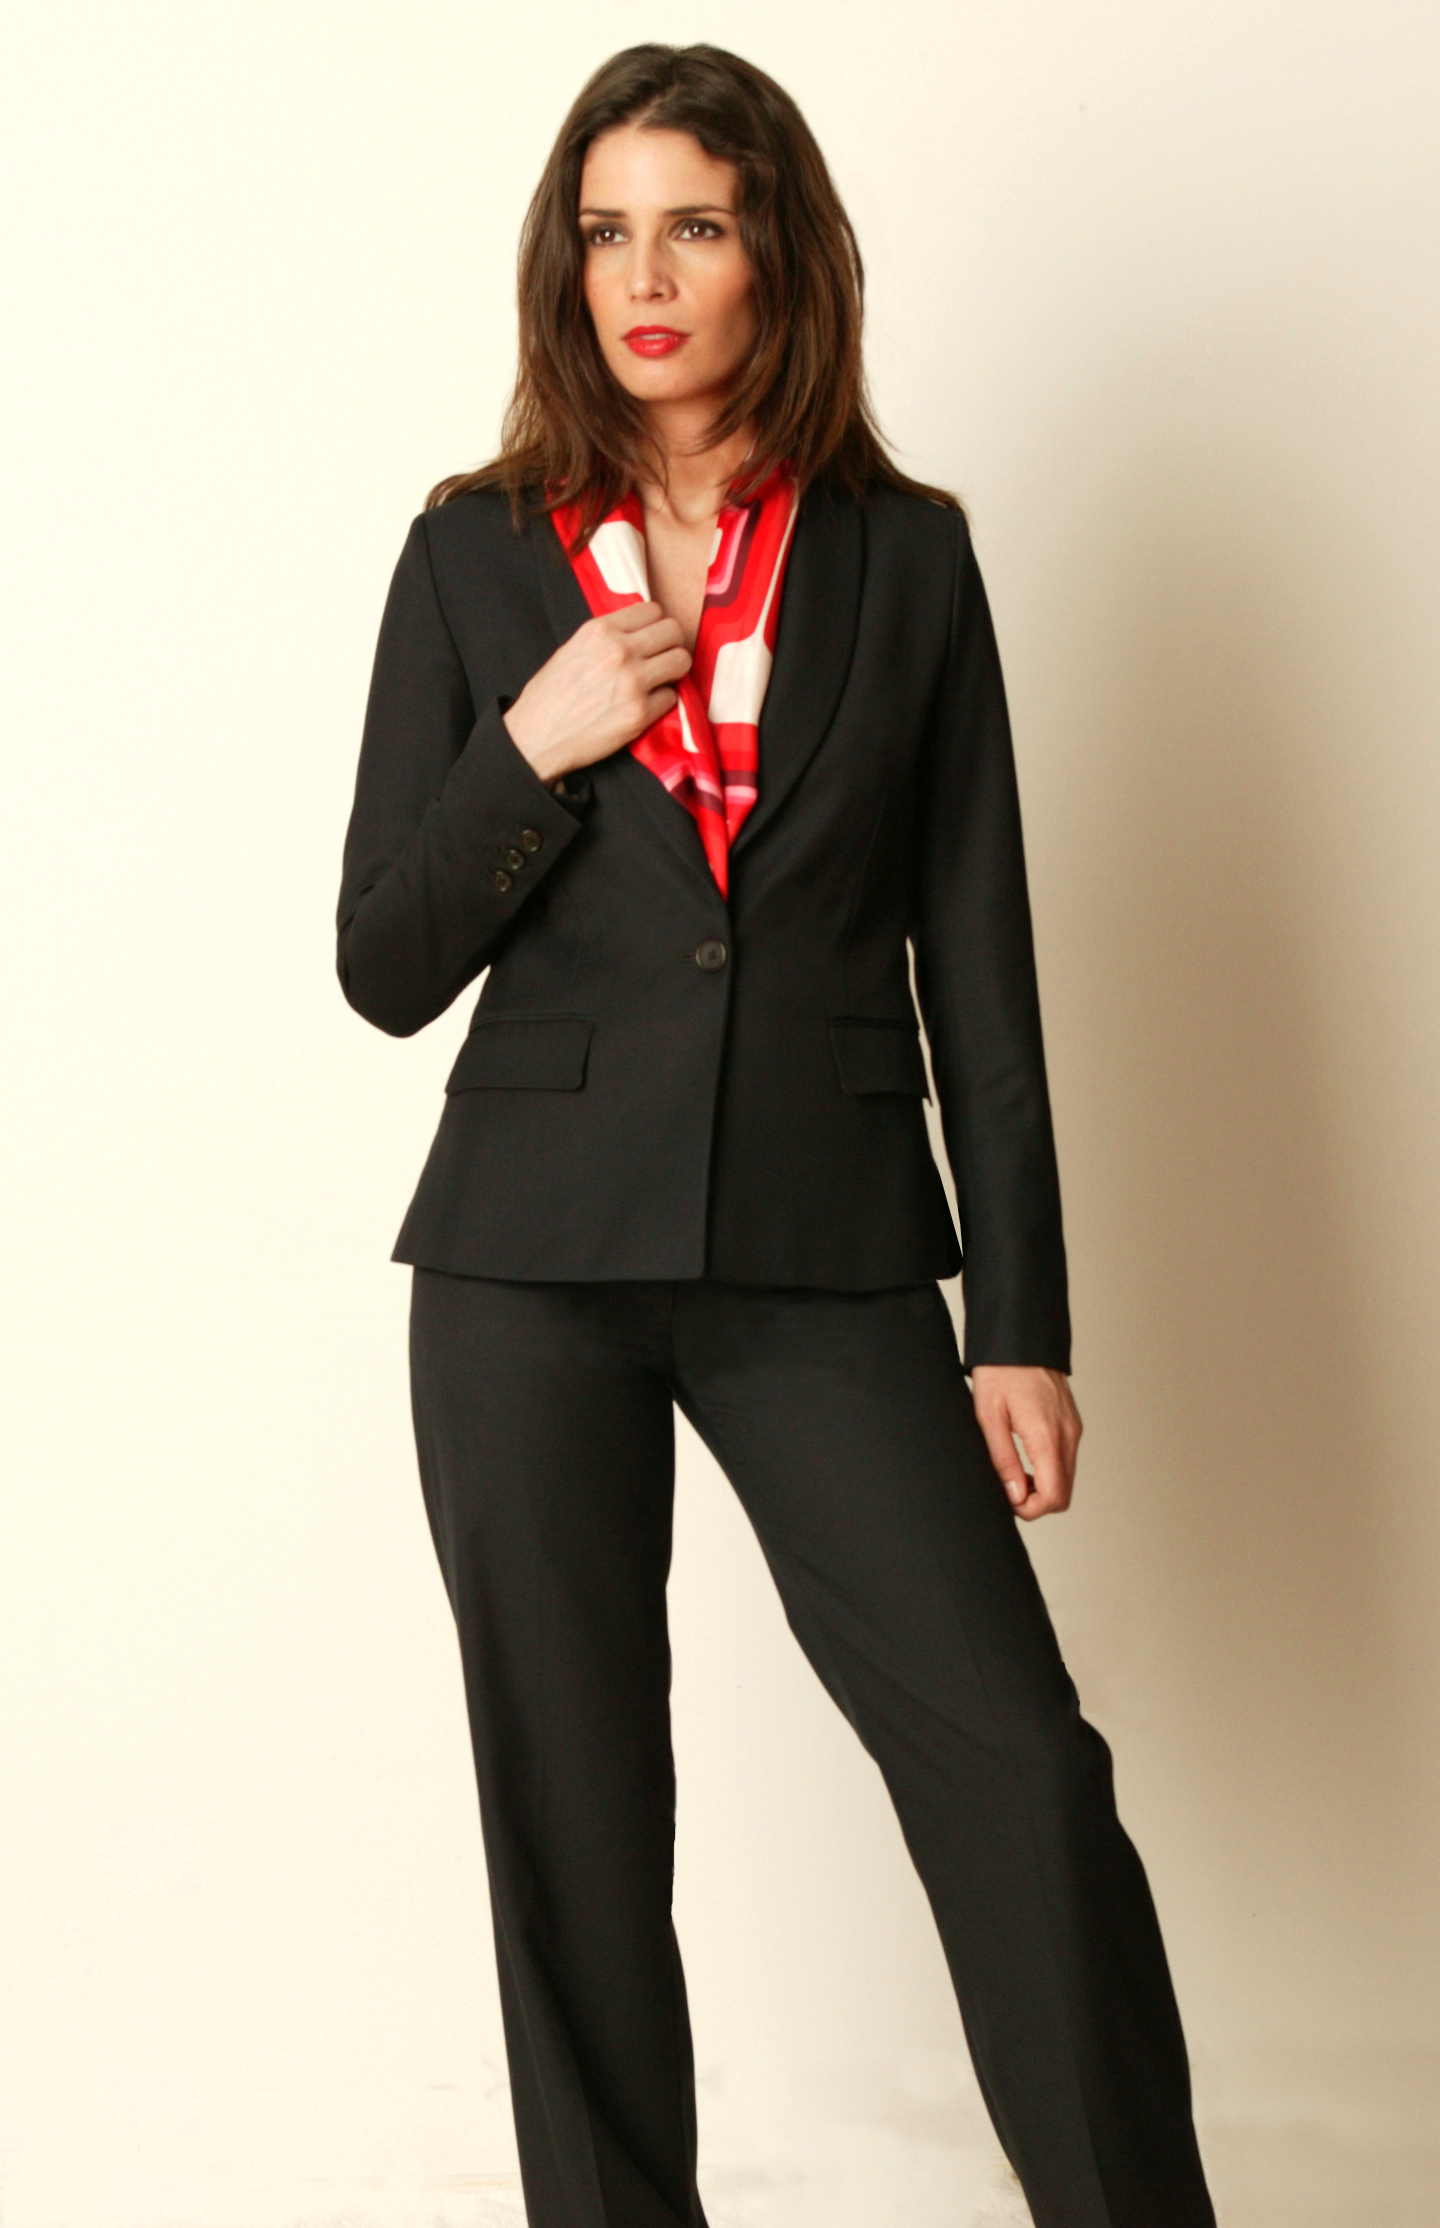 Moi-Meme Announces Spring/Summer Collection of Custom-Tailored Suits and Career Clothing for